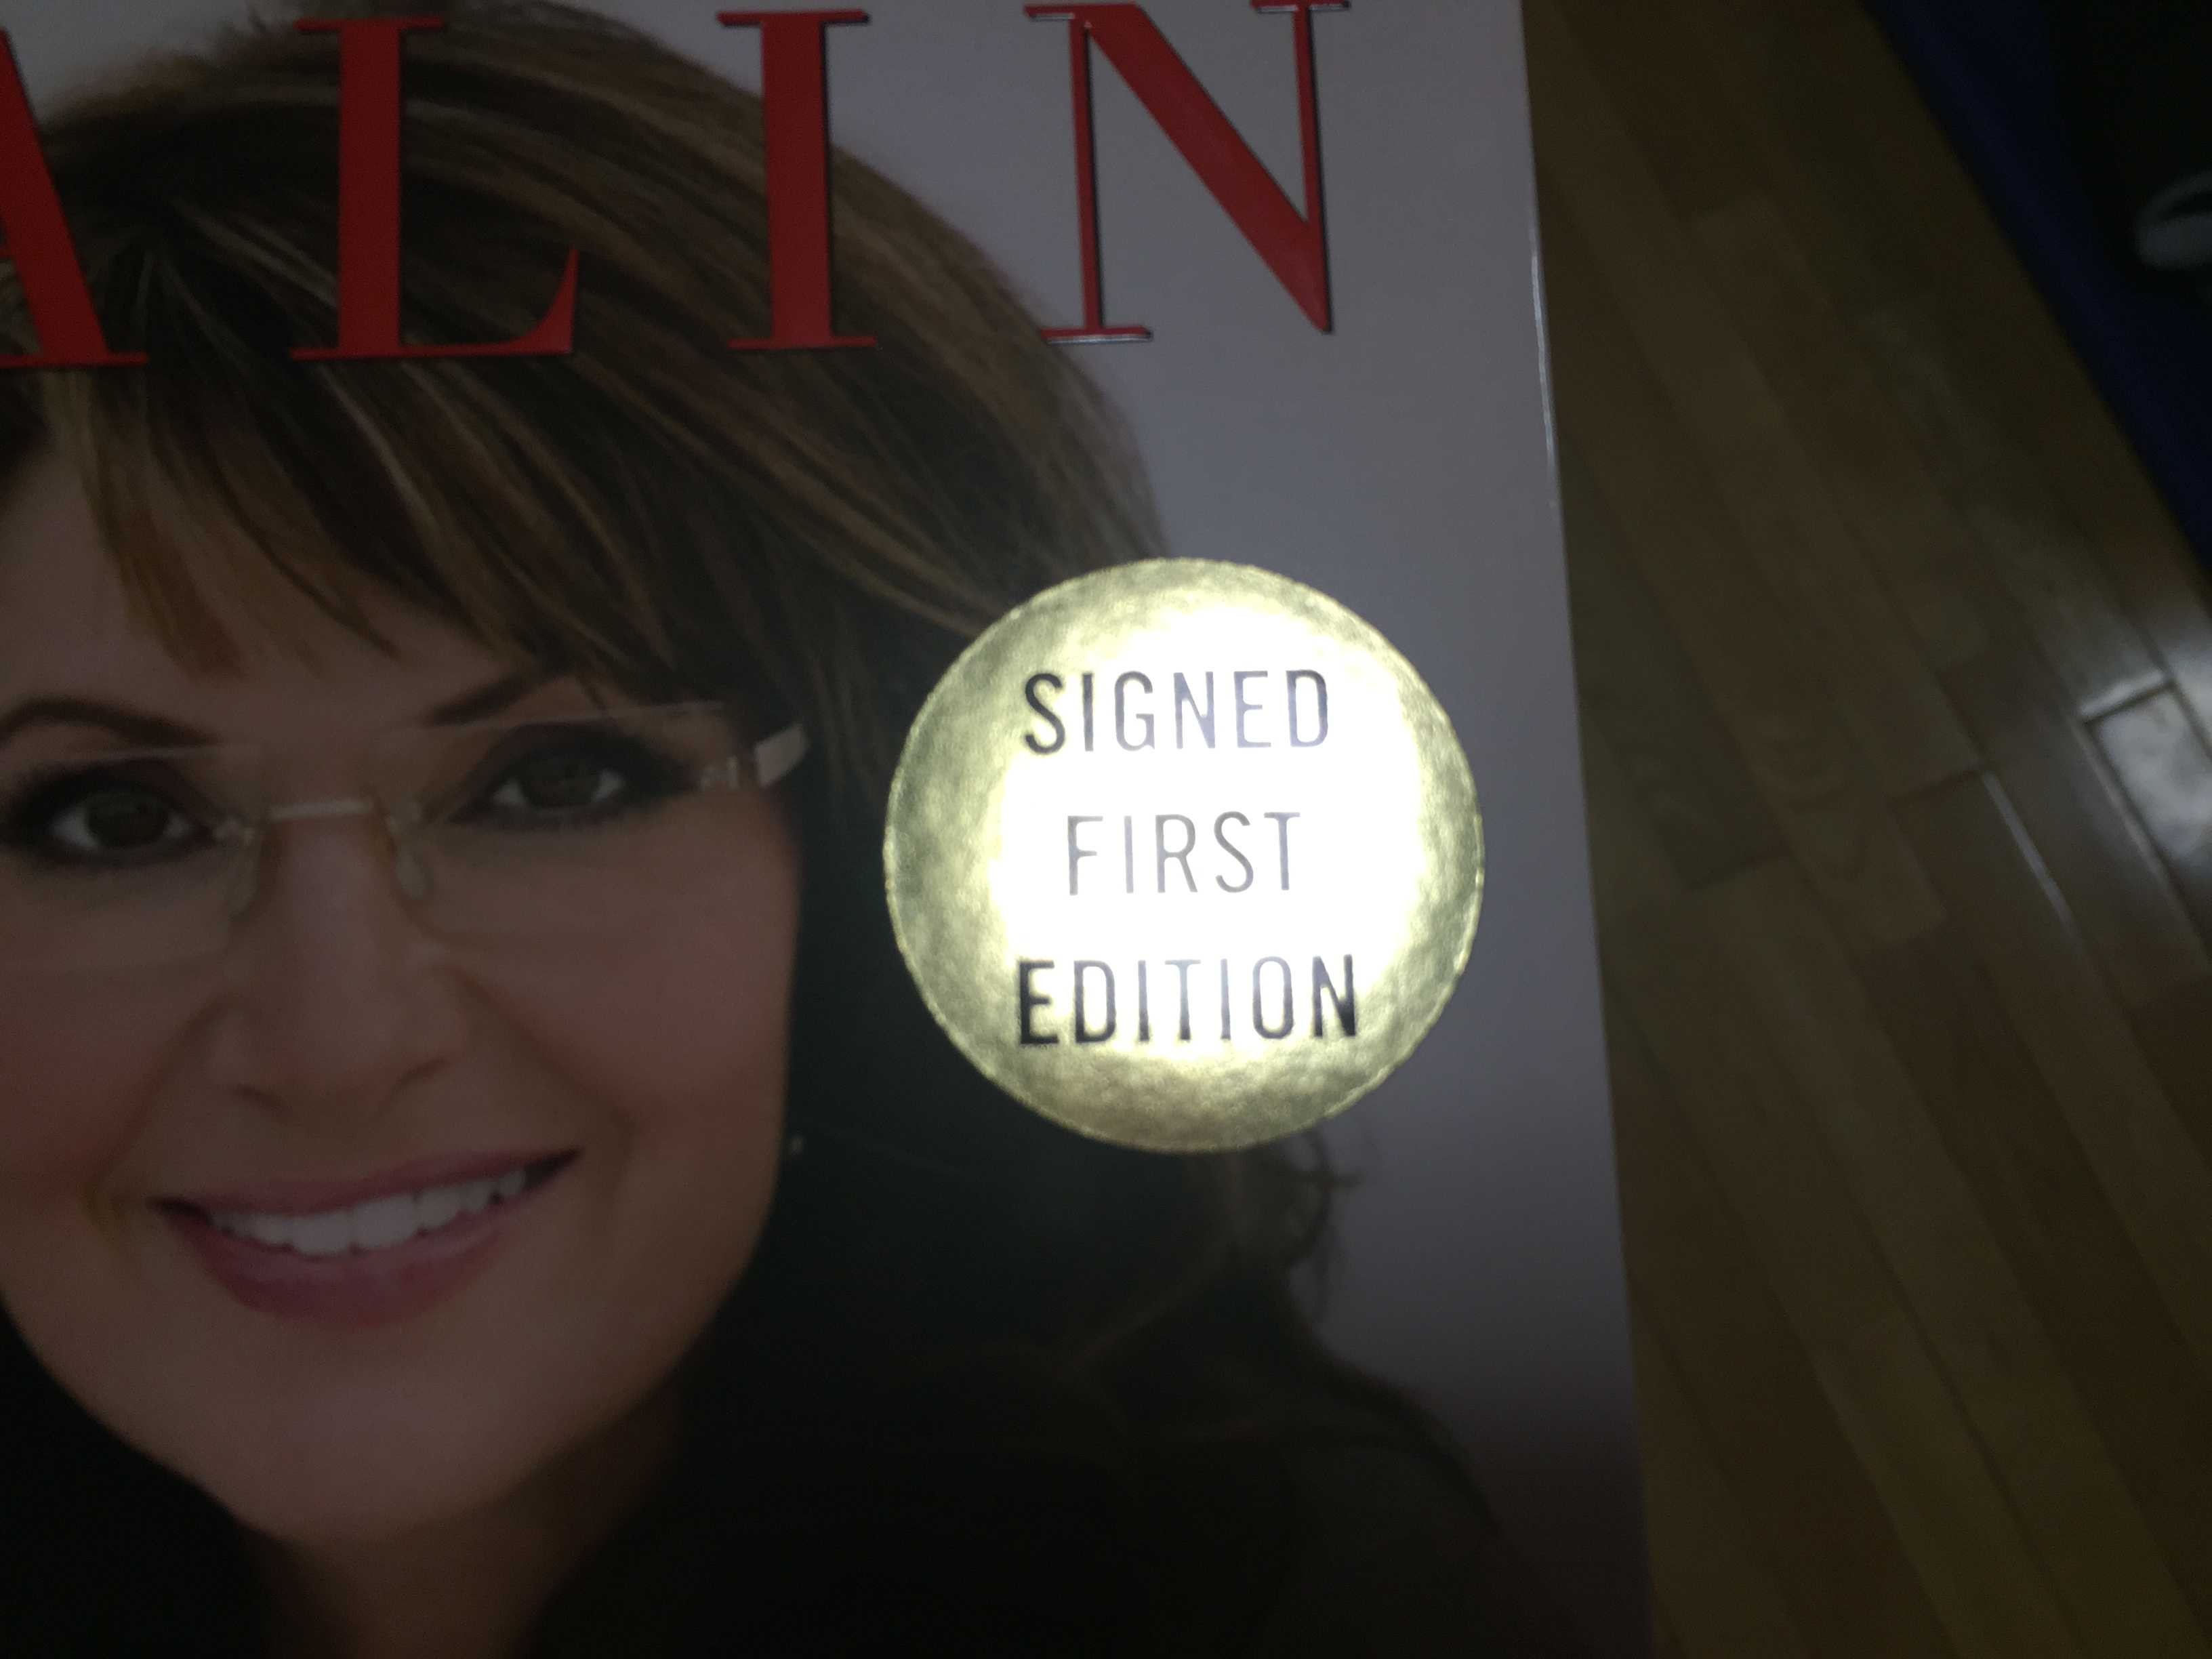 Sarah Palin SIGNED FIRST EDITION